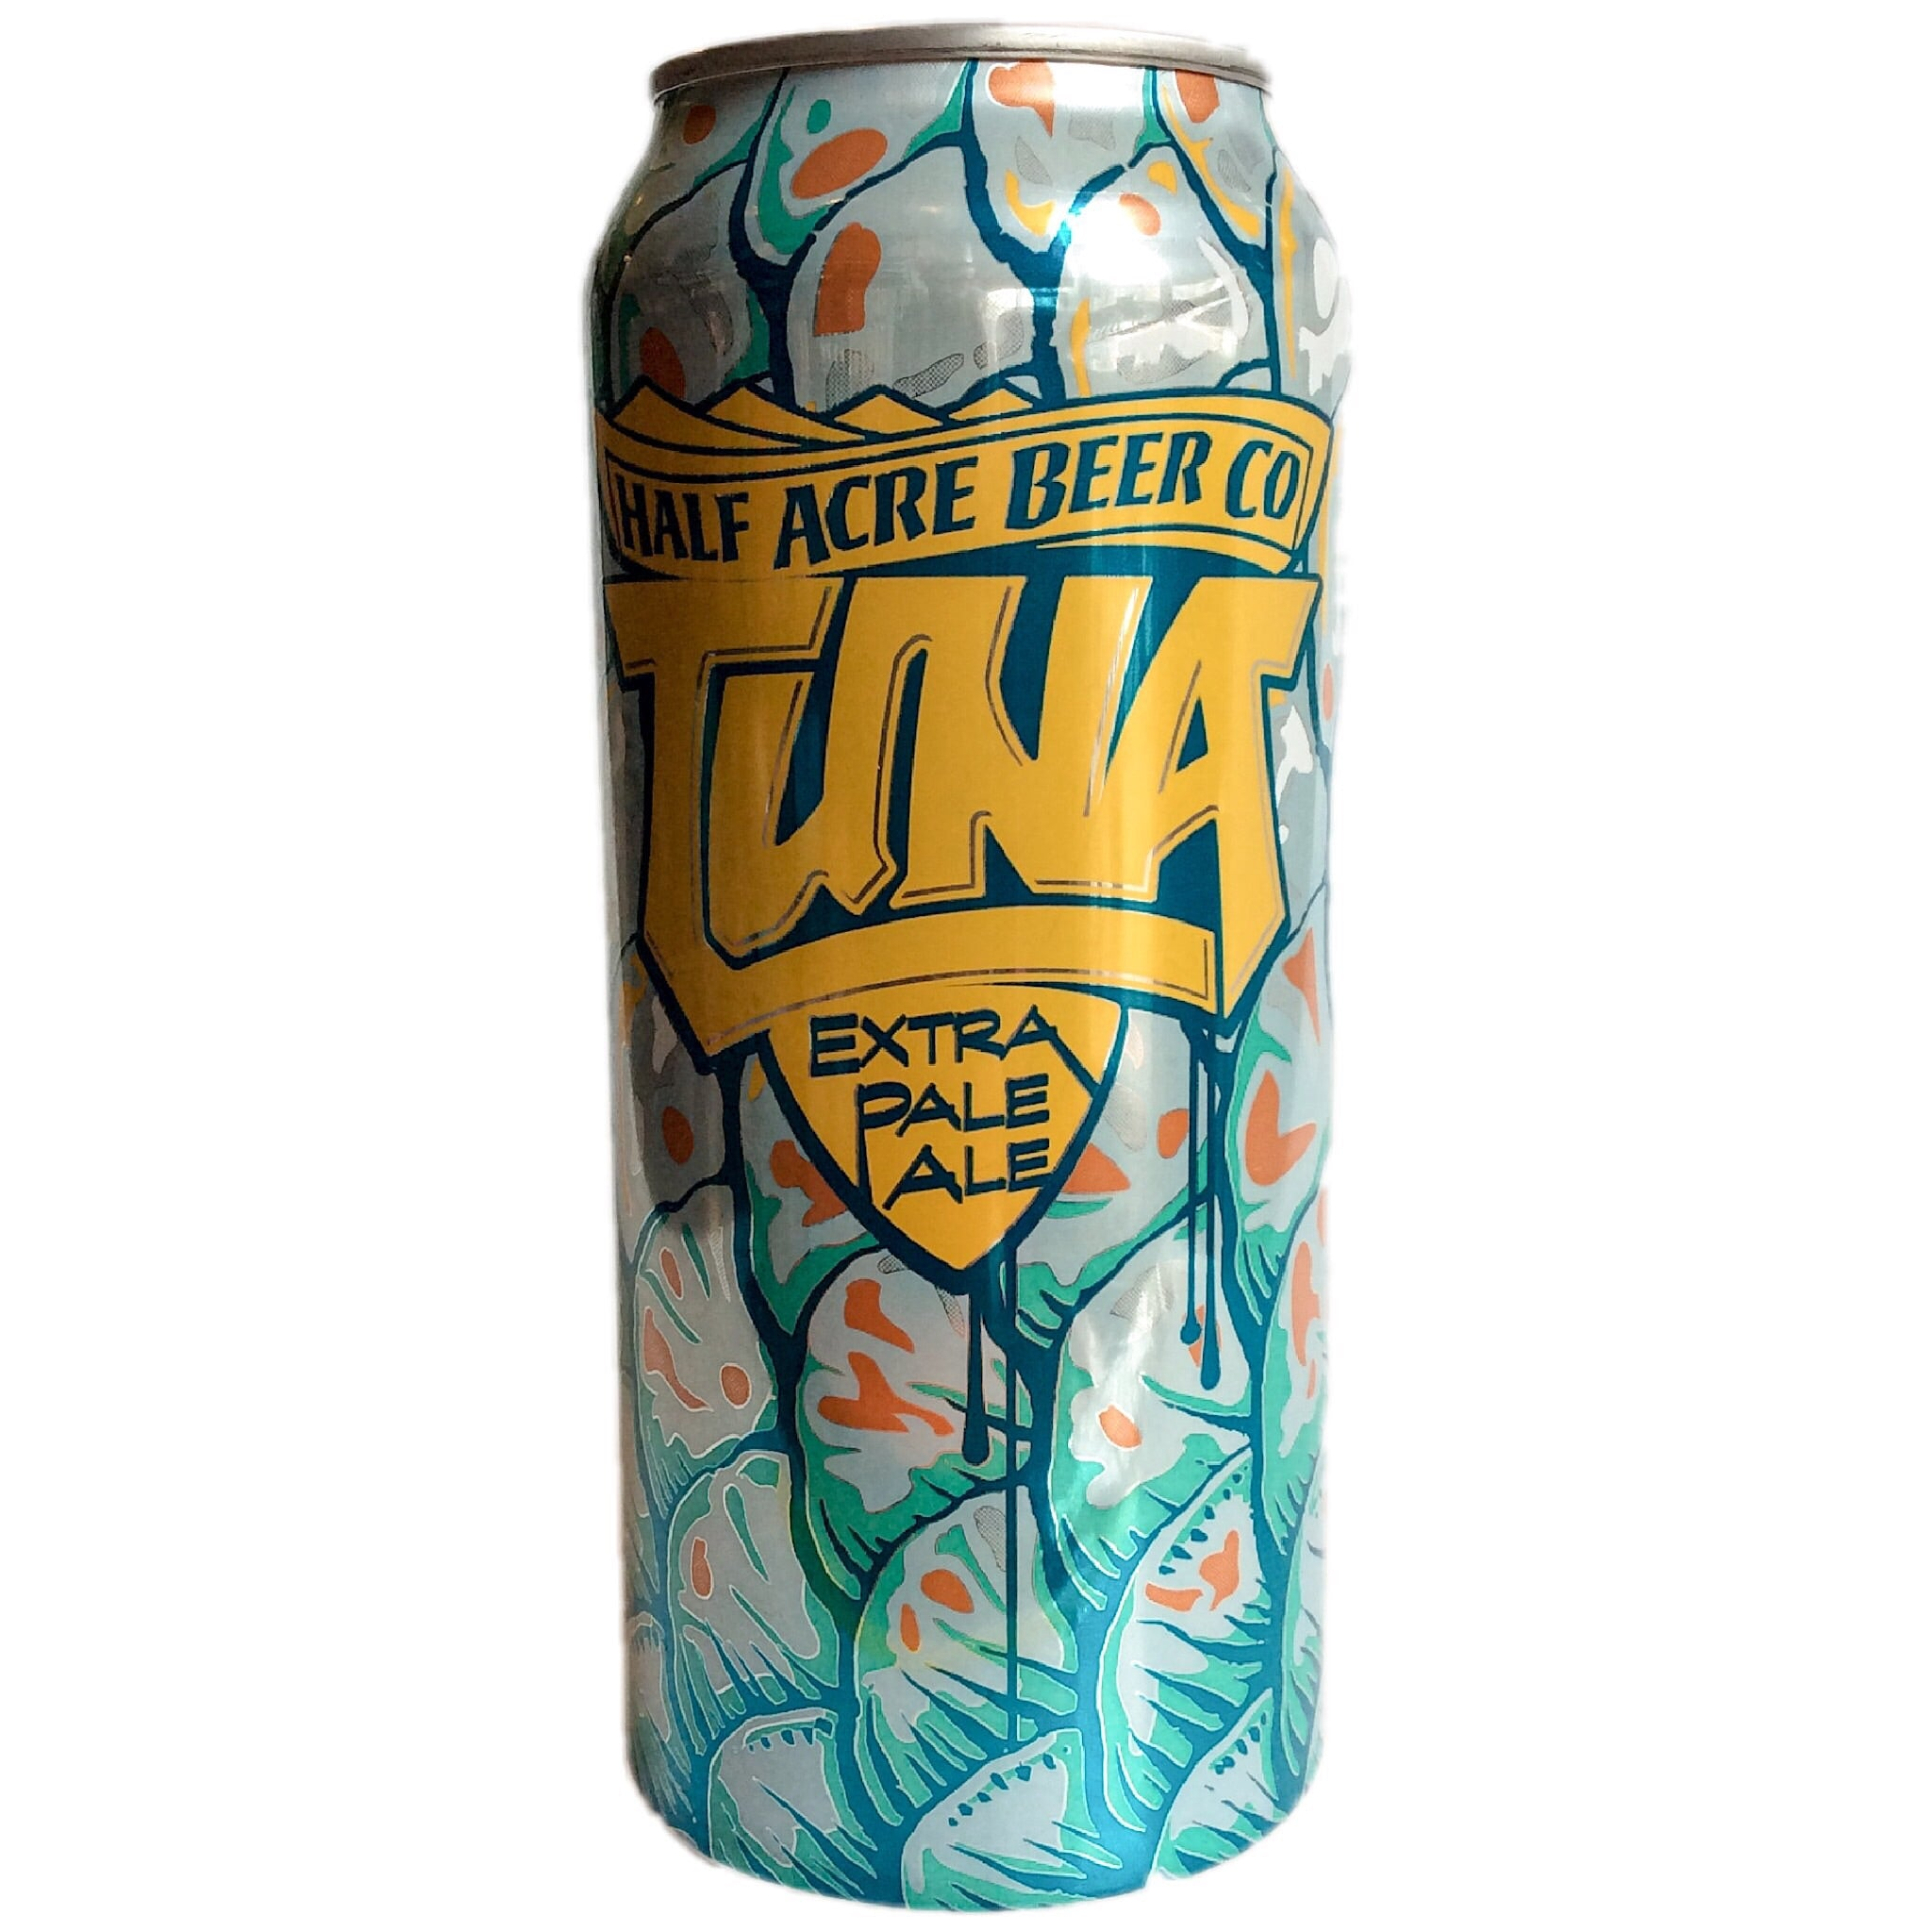 Half Acre Tuna Extra Pale Ale 4.7% (473ml can)-Hop Burns & Black